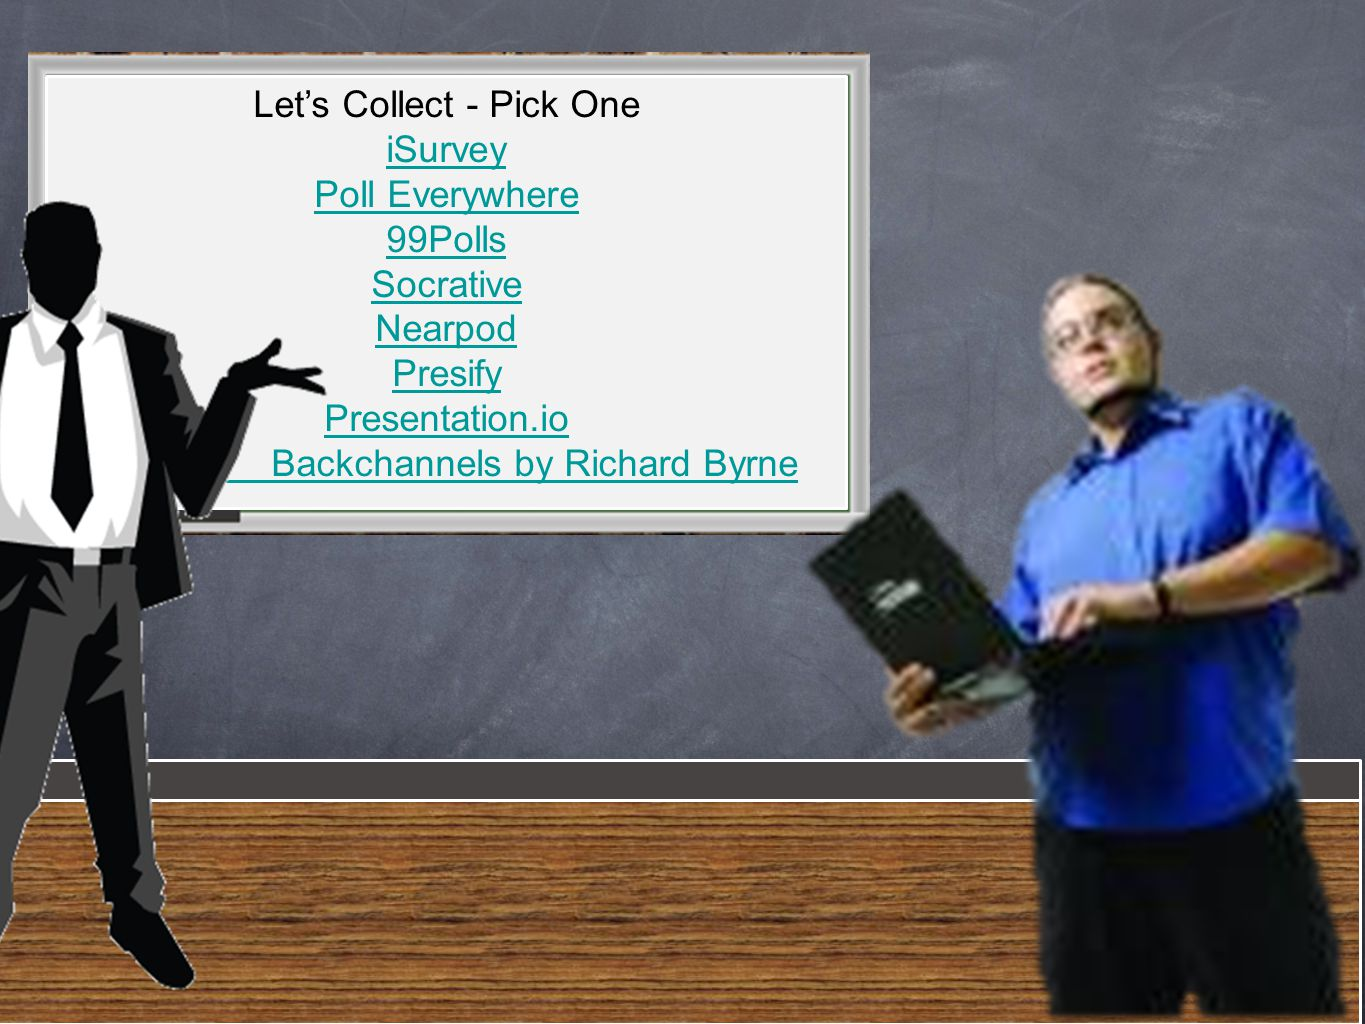 Let's Collect - Pick One iSurvey Poll Everywhere 99Polls Socrative Nearpod Presify Presentation.io Backchannels by Richard Byrne